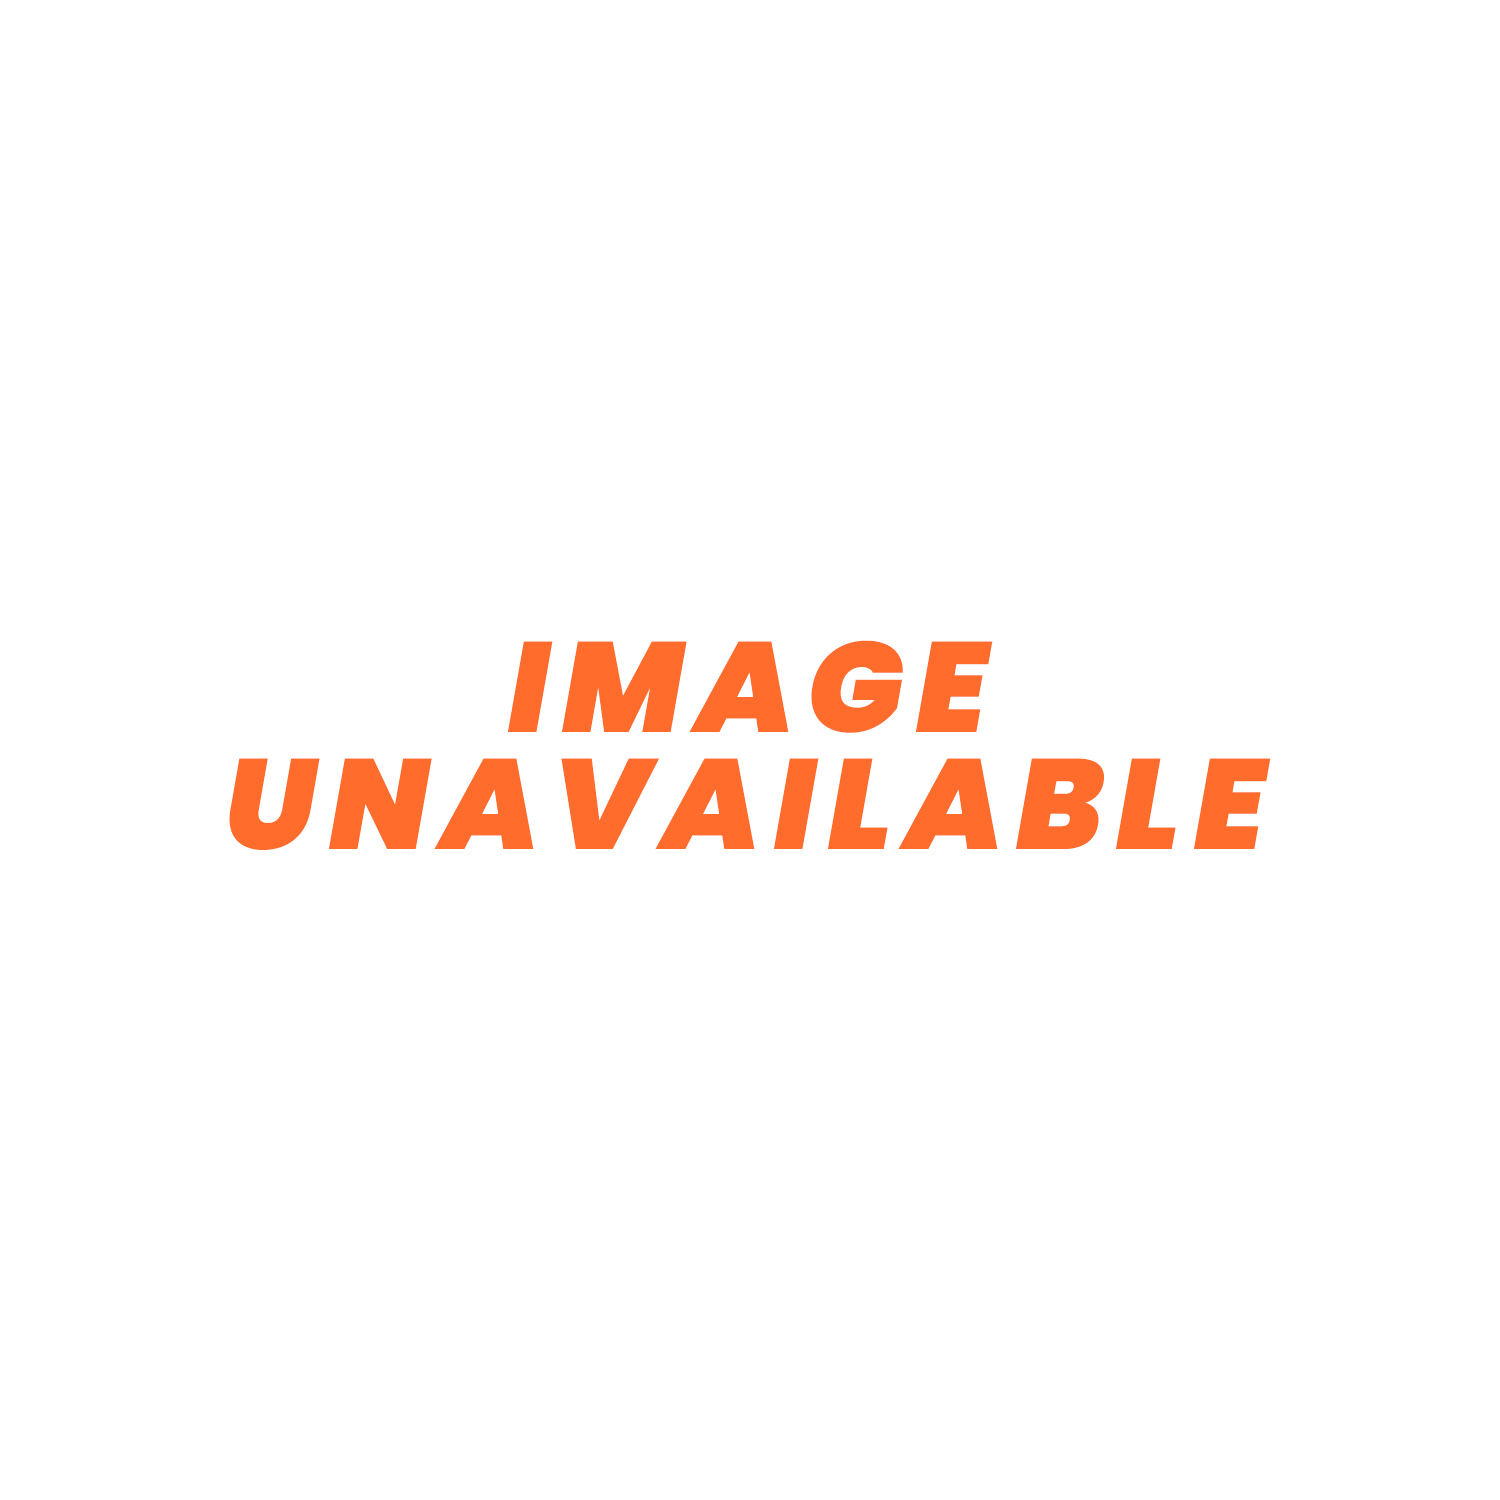 "SPAL Radiator Fan - 11.0"" (280mm) Push VA09-BP8/C-54S 879cfm"